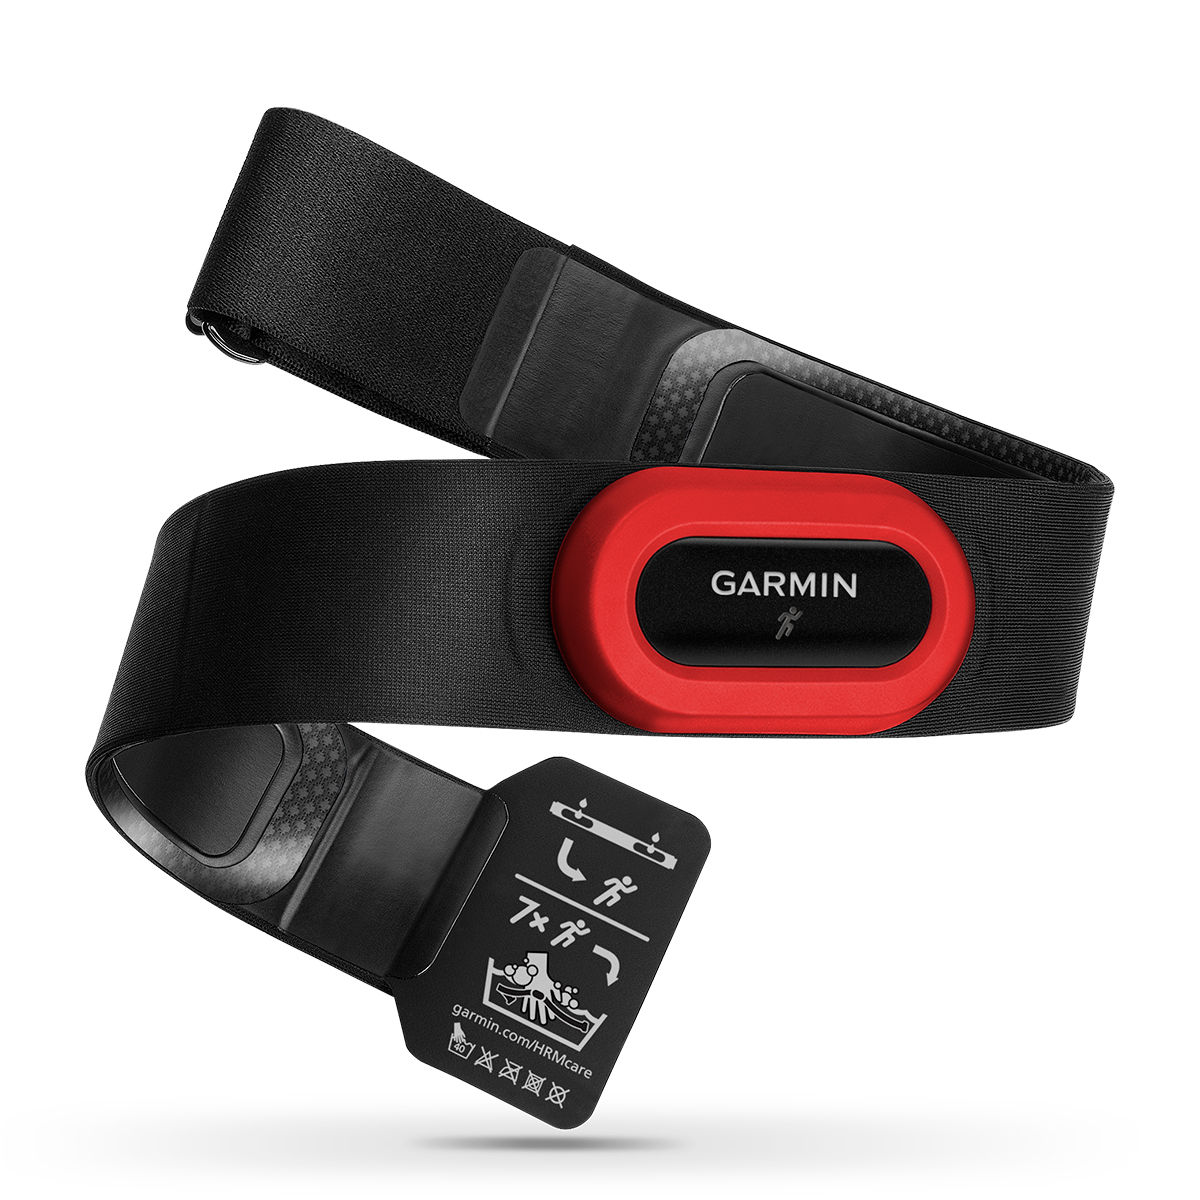 Garmin HRM4-Run Heart Rate Monitor - Color: Black/Red - Size: One Size, Black/Red, large, image 2